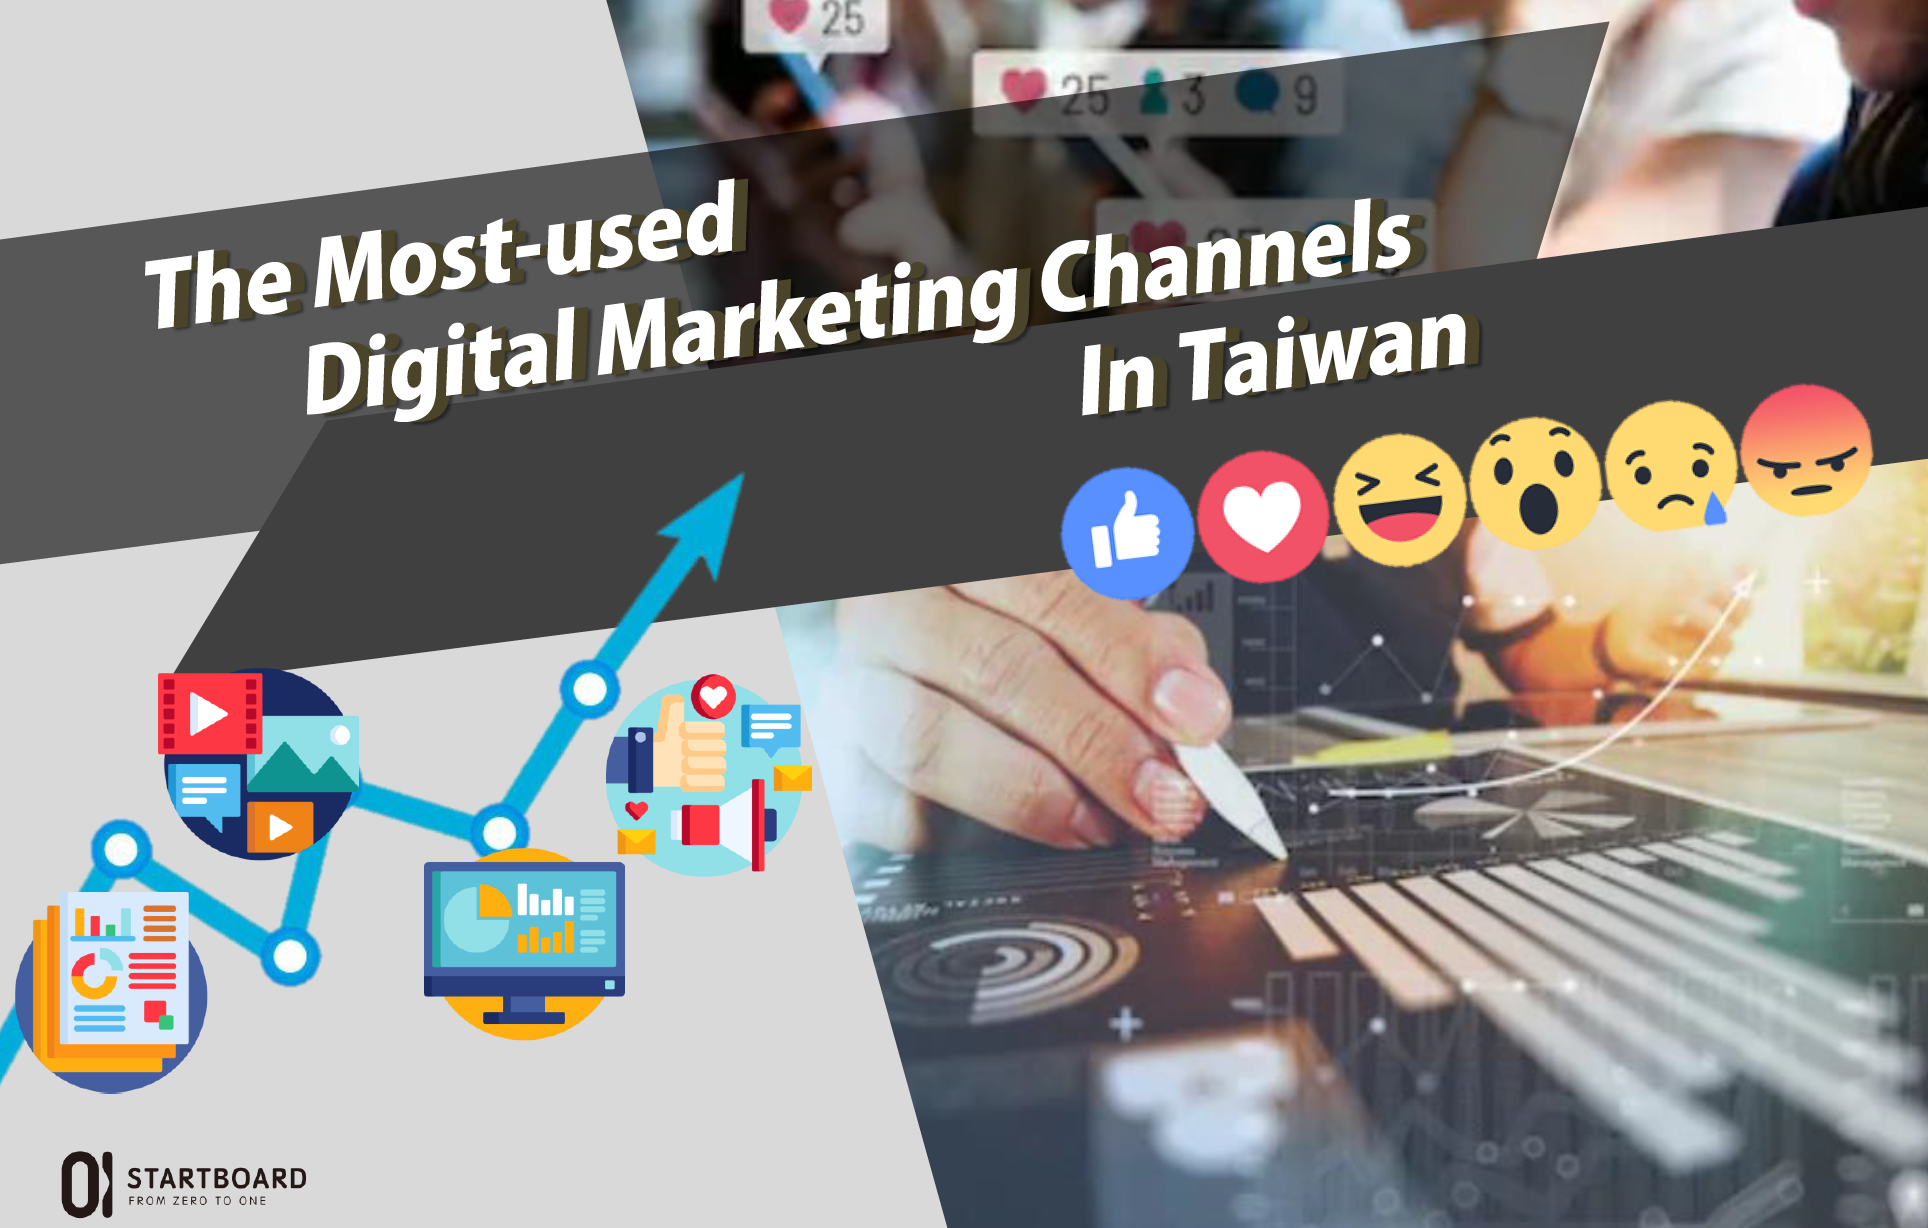 9 Social Media Channels that performs best in Taiwan